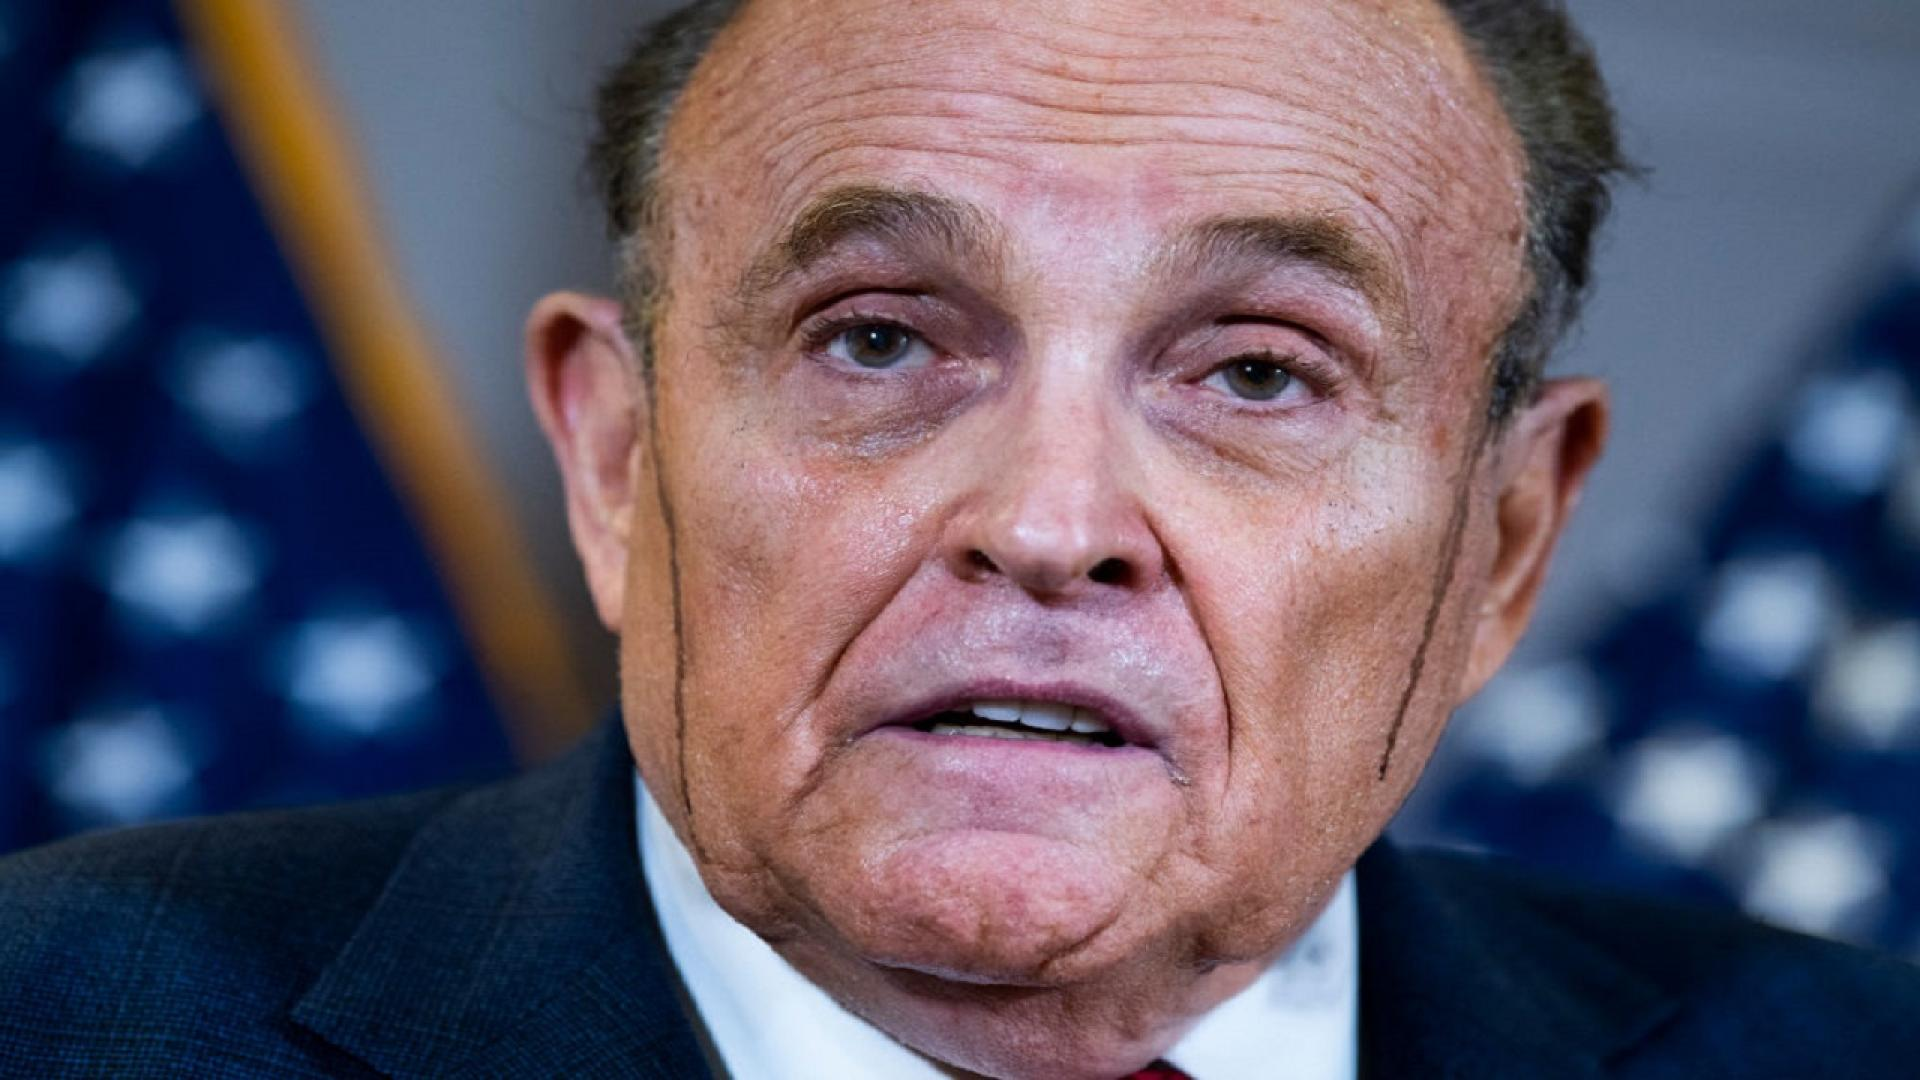 Rudy Giuliani has been sued by Dominion Voting Systems for $1.3 billion in damages.